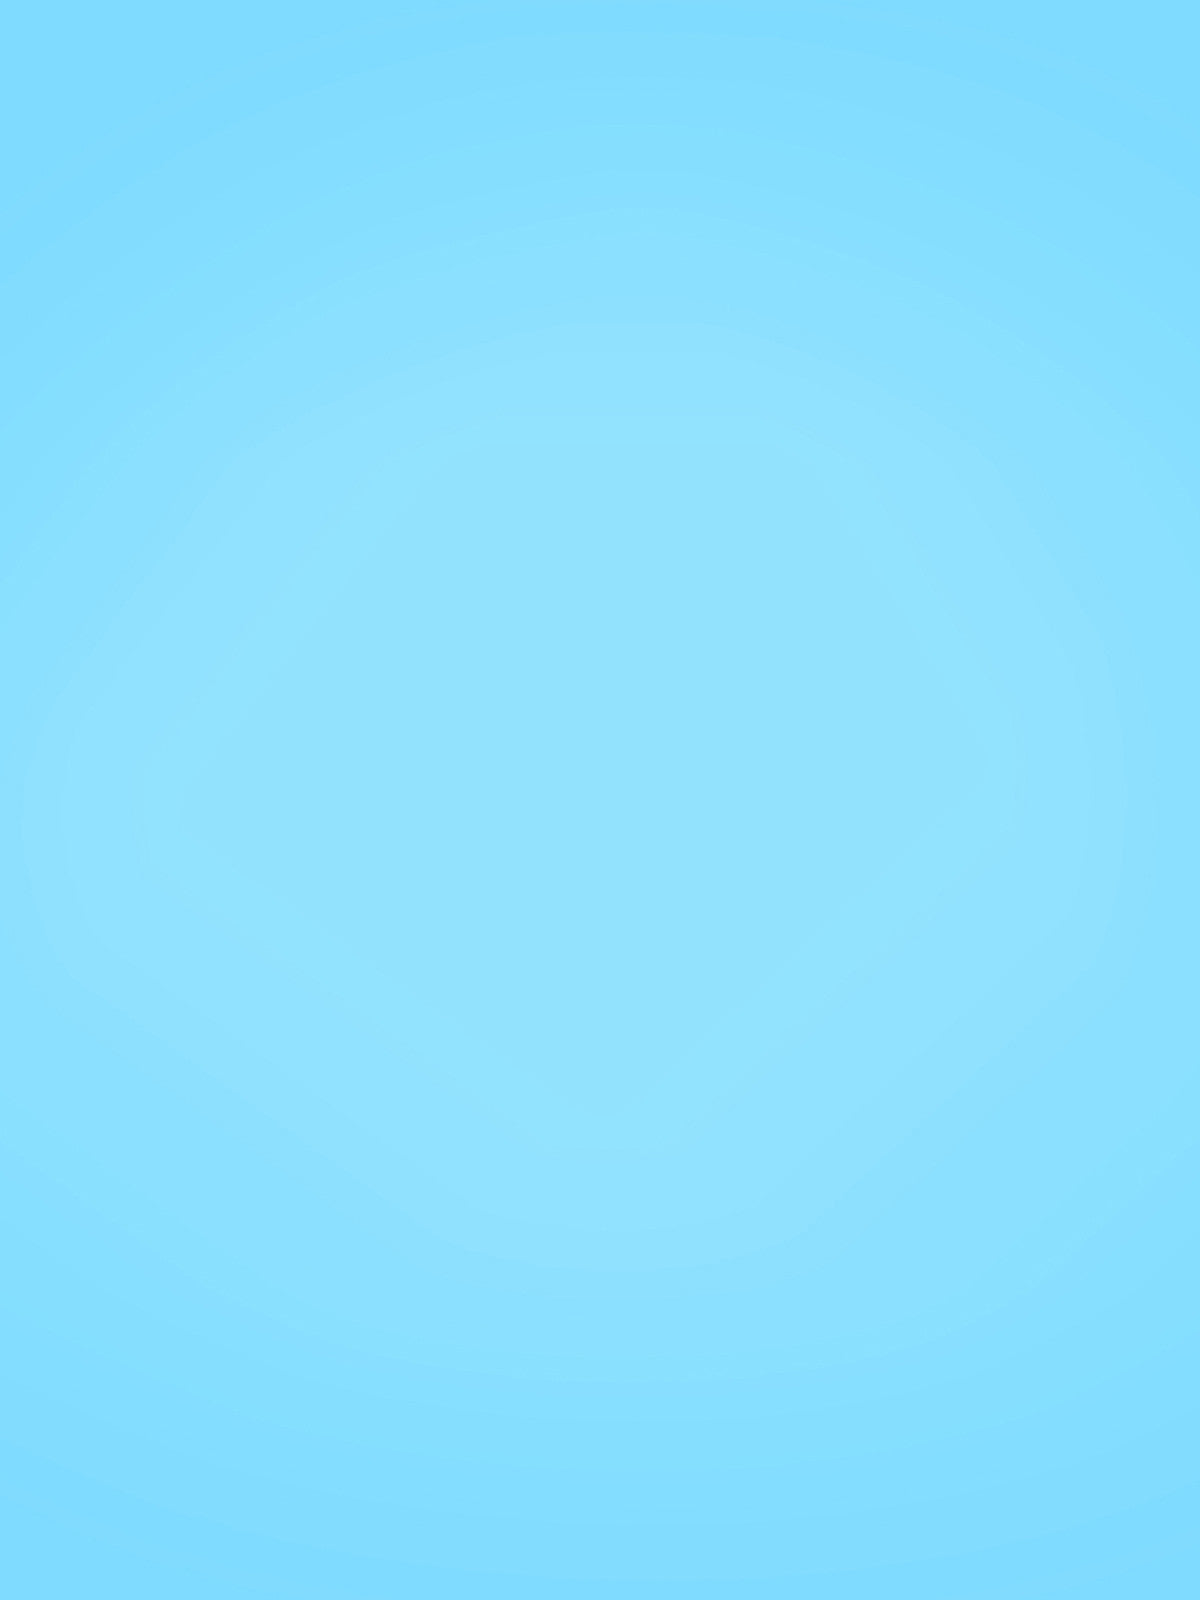 Light Blue Solid Printed Photography Background / 9101